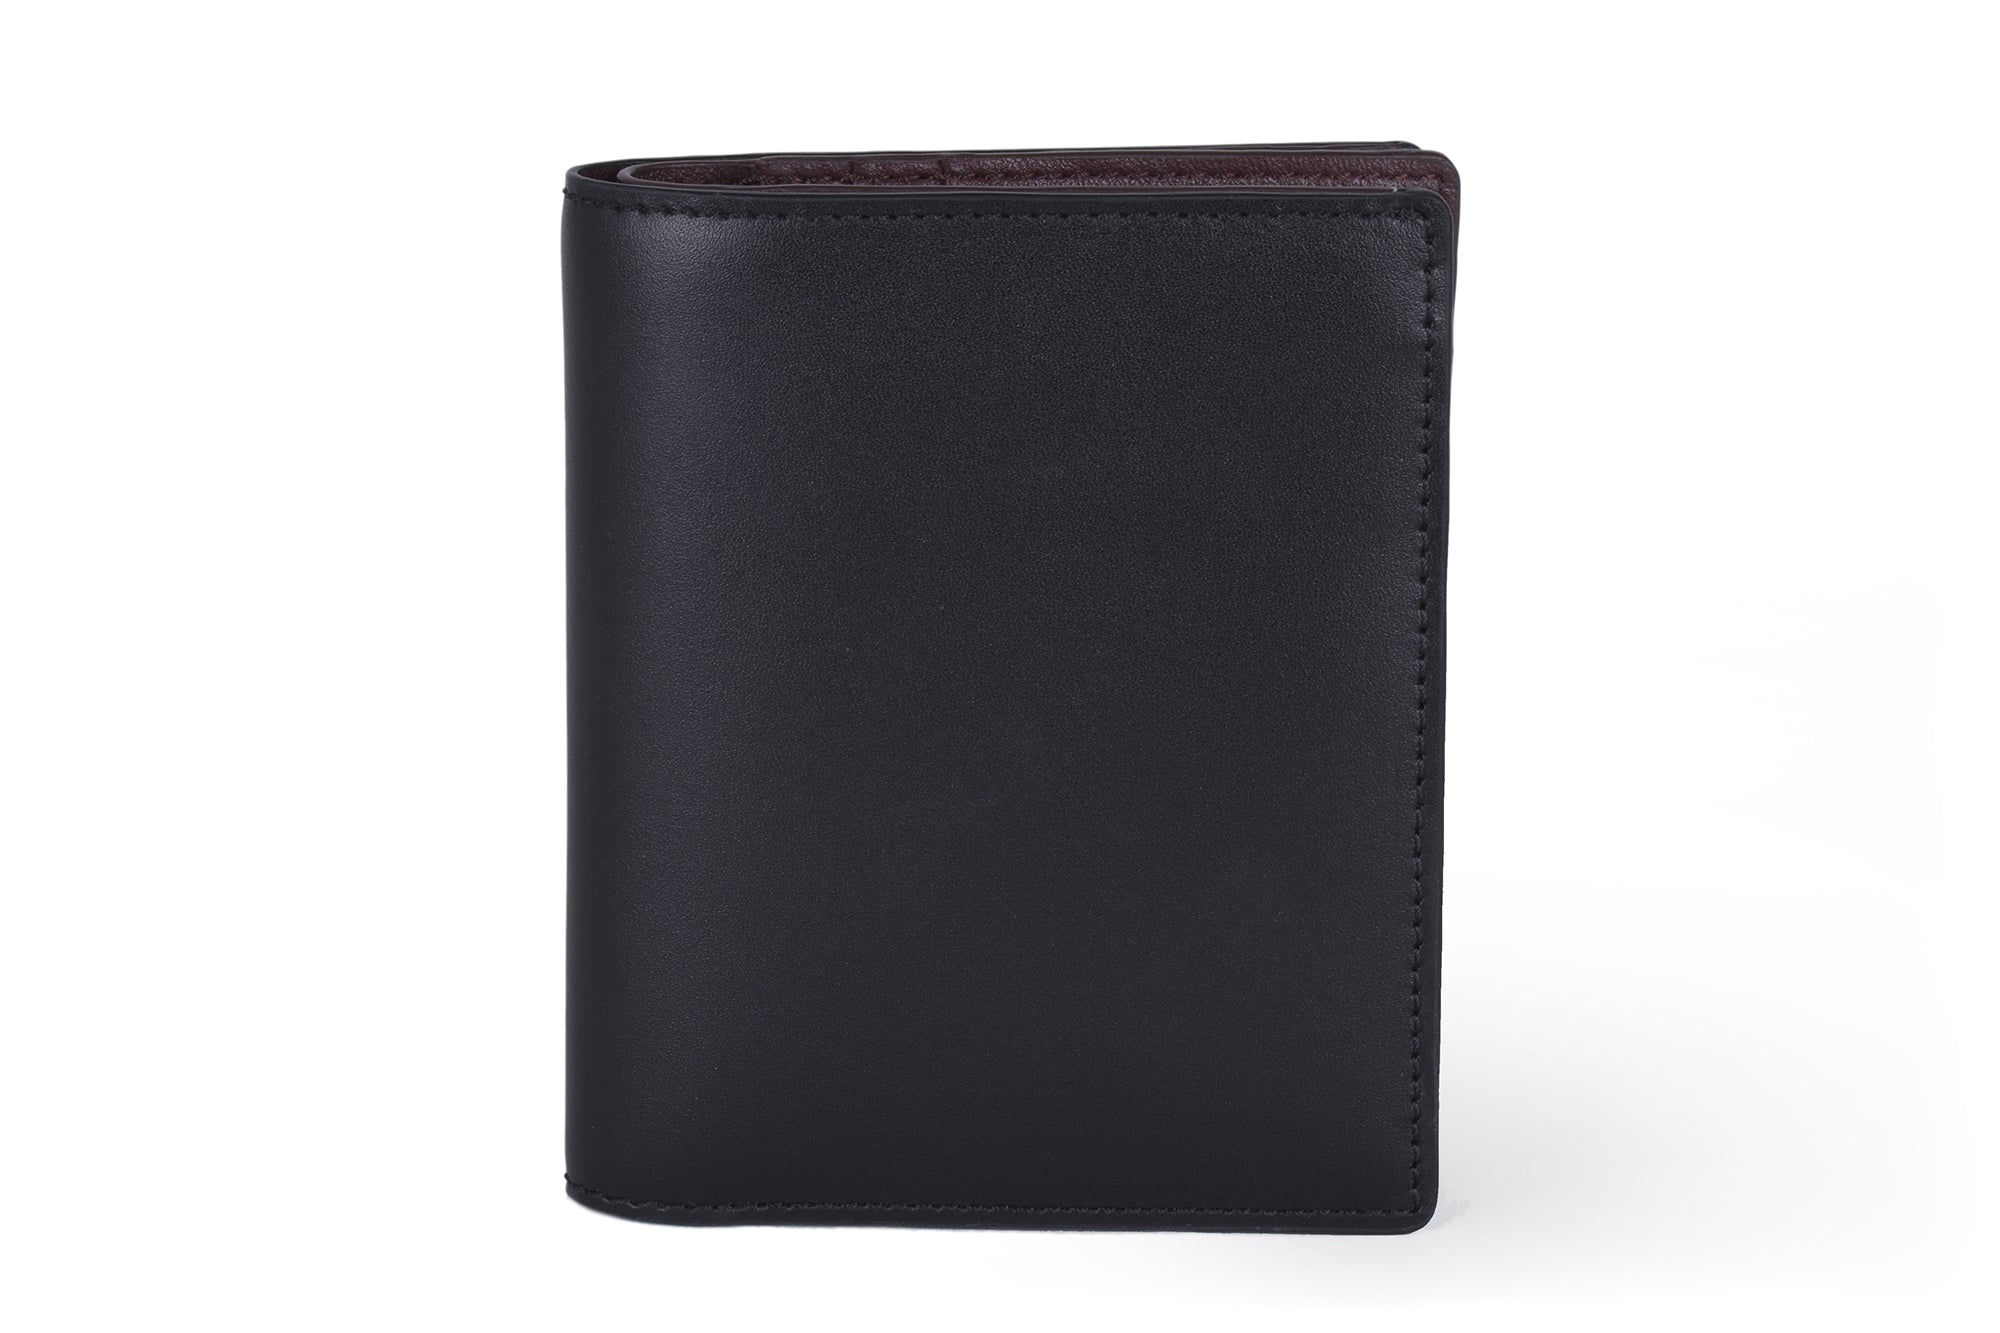 Specter VT Bifold Wallet with Cardholder | Slim Leather Wallet